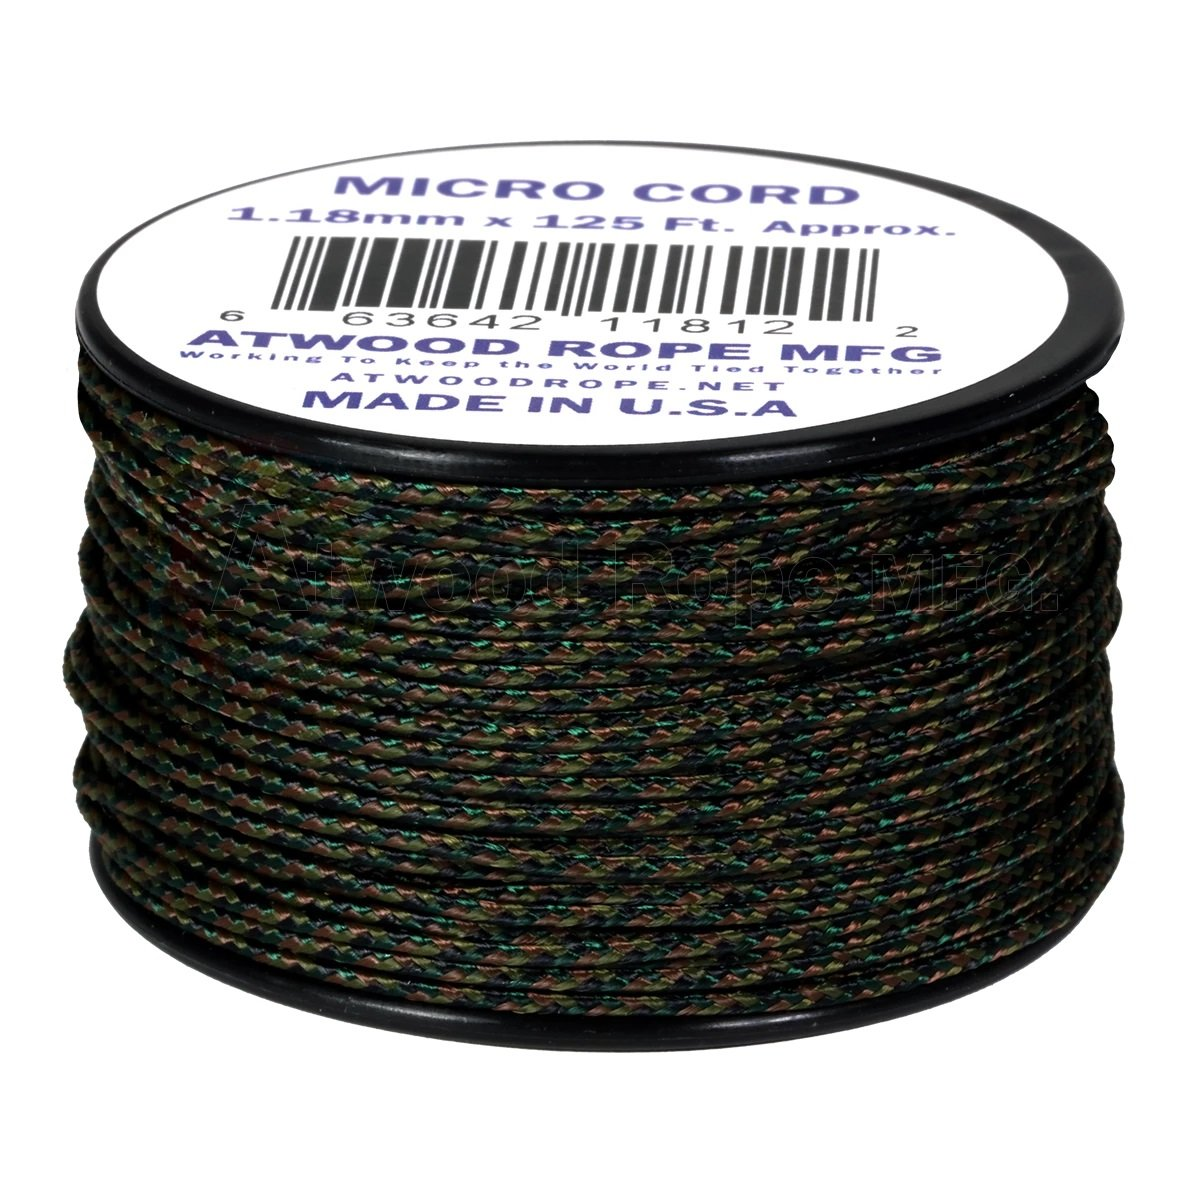 1.18mm Micro Cord – 100ft